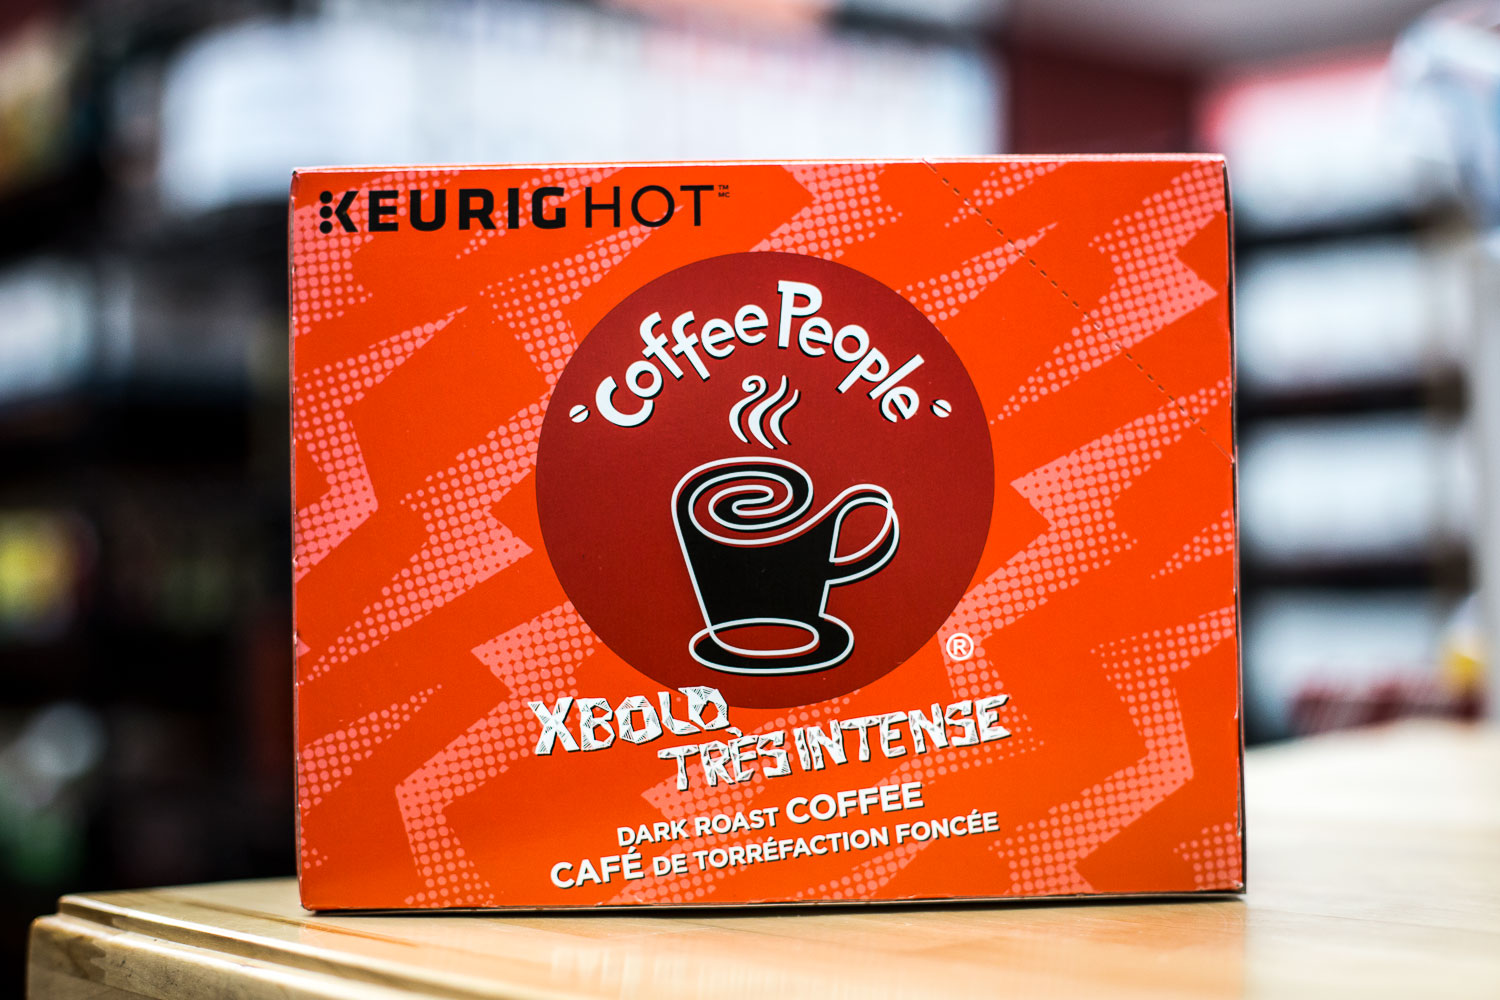 Extra bold and rich, this dark roast from Coffee People will really get your engine running.